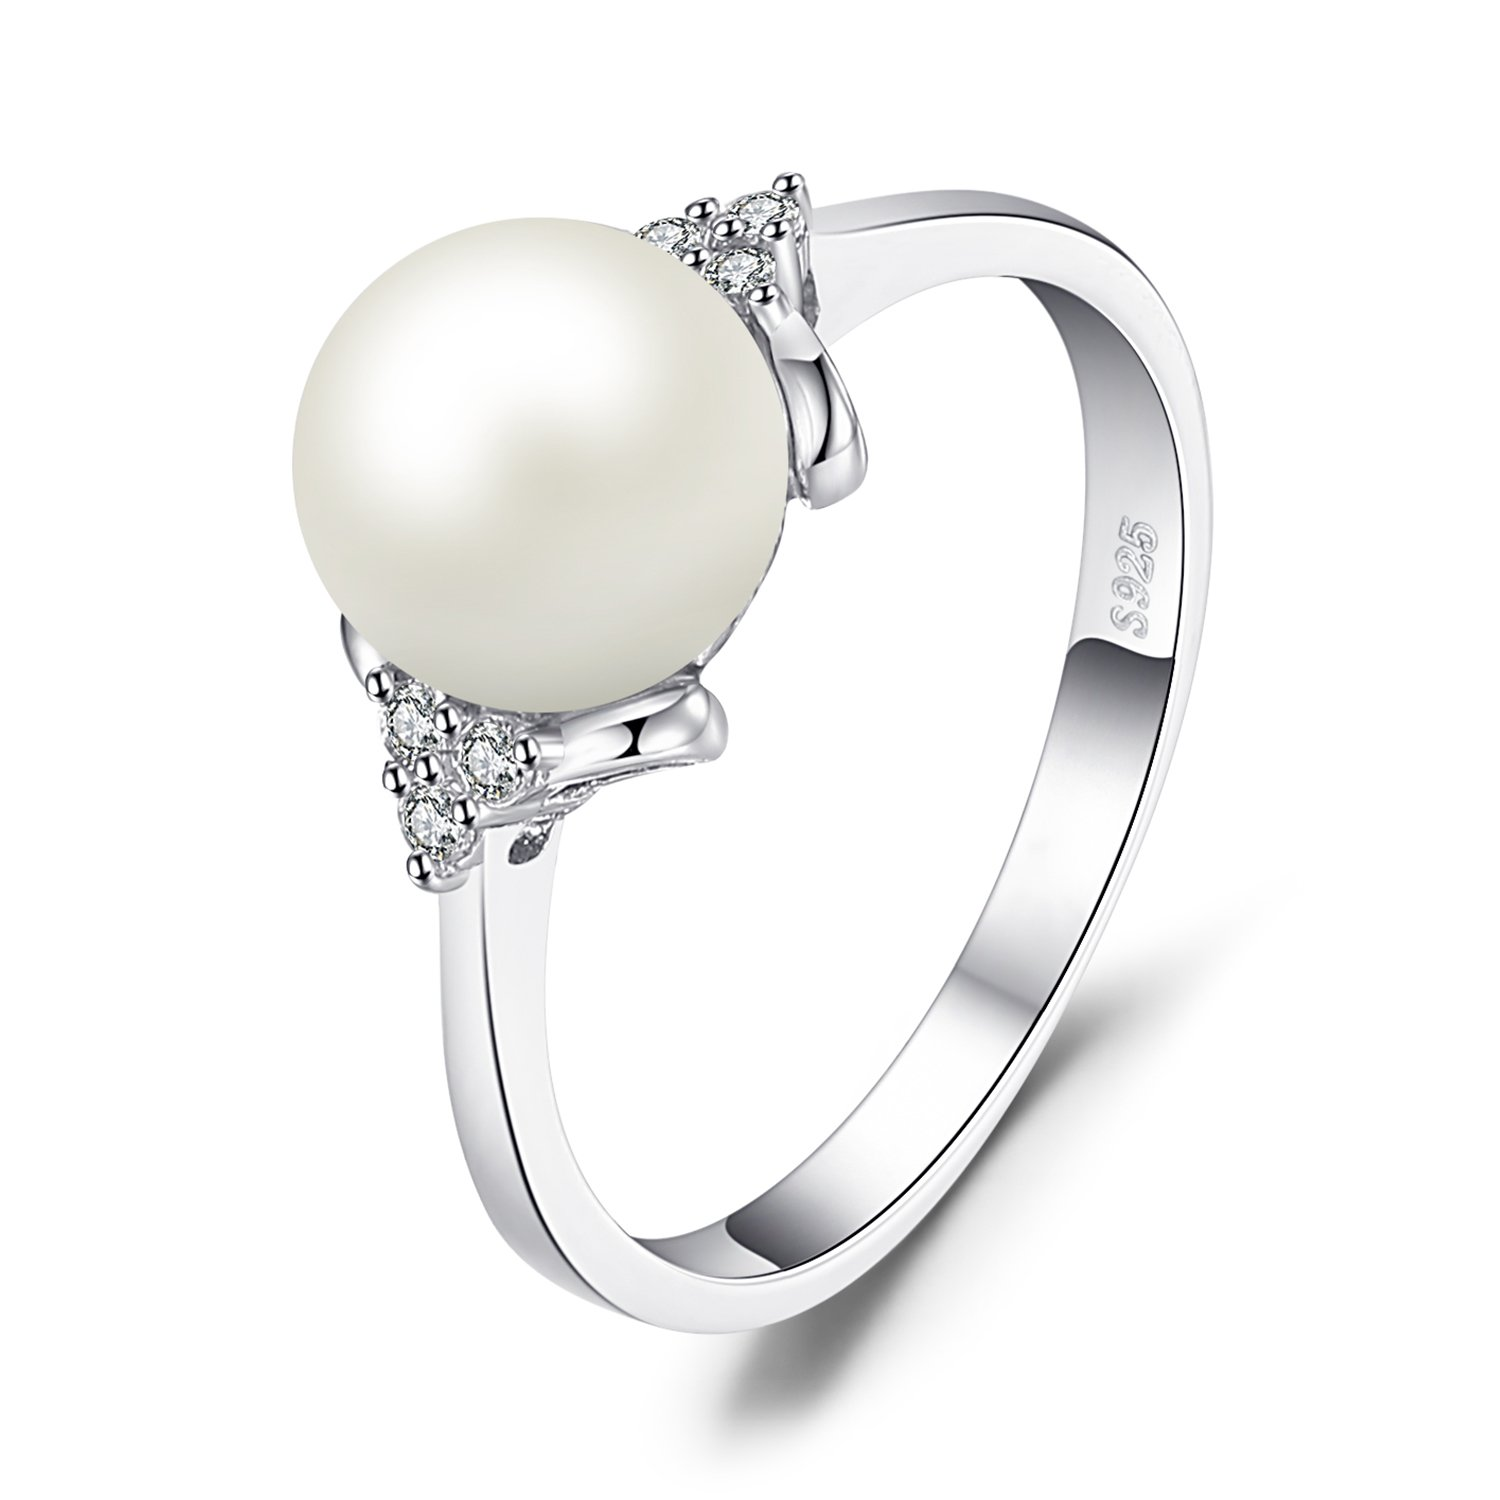 636b33e2b Amazon.com: JewelryPalace Women's White 8mm AAA Quality Freshwater Cultured  Pearl Ring 925 Sterling Silver: Jewelry